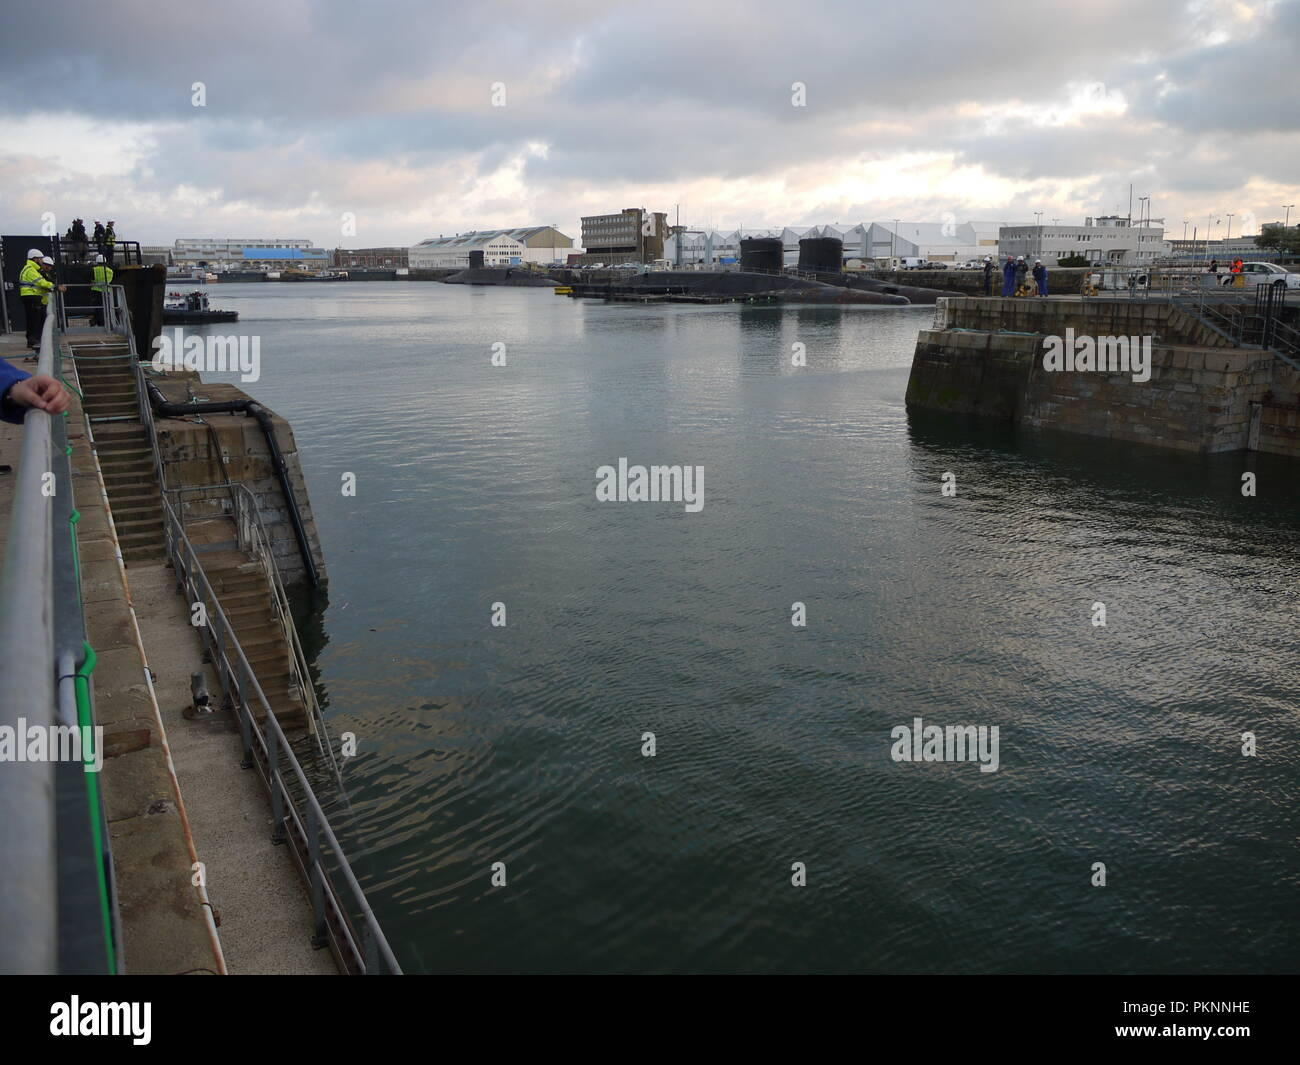 Three french missiles launchers nuclear submarines are waiting for deconstruction in military port of Cherbourg (Normandy) - Stock Image